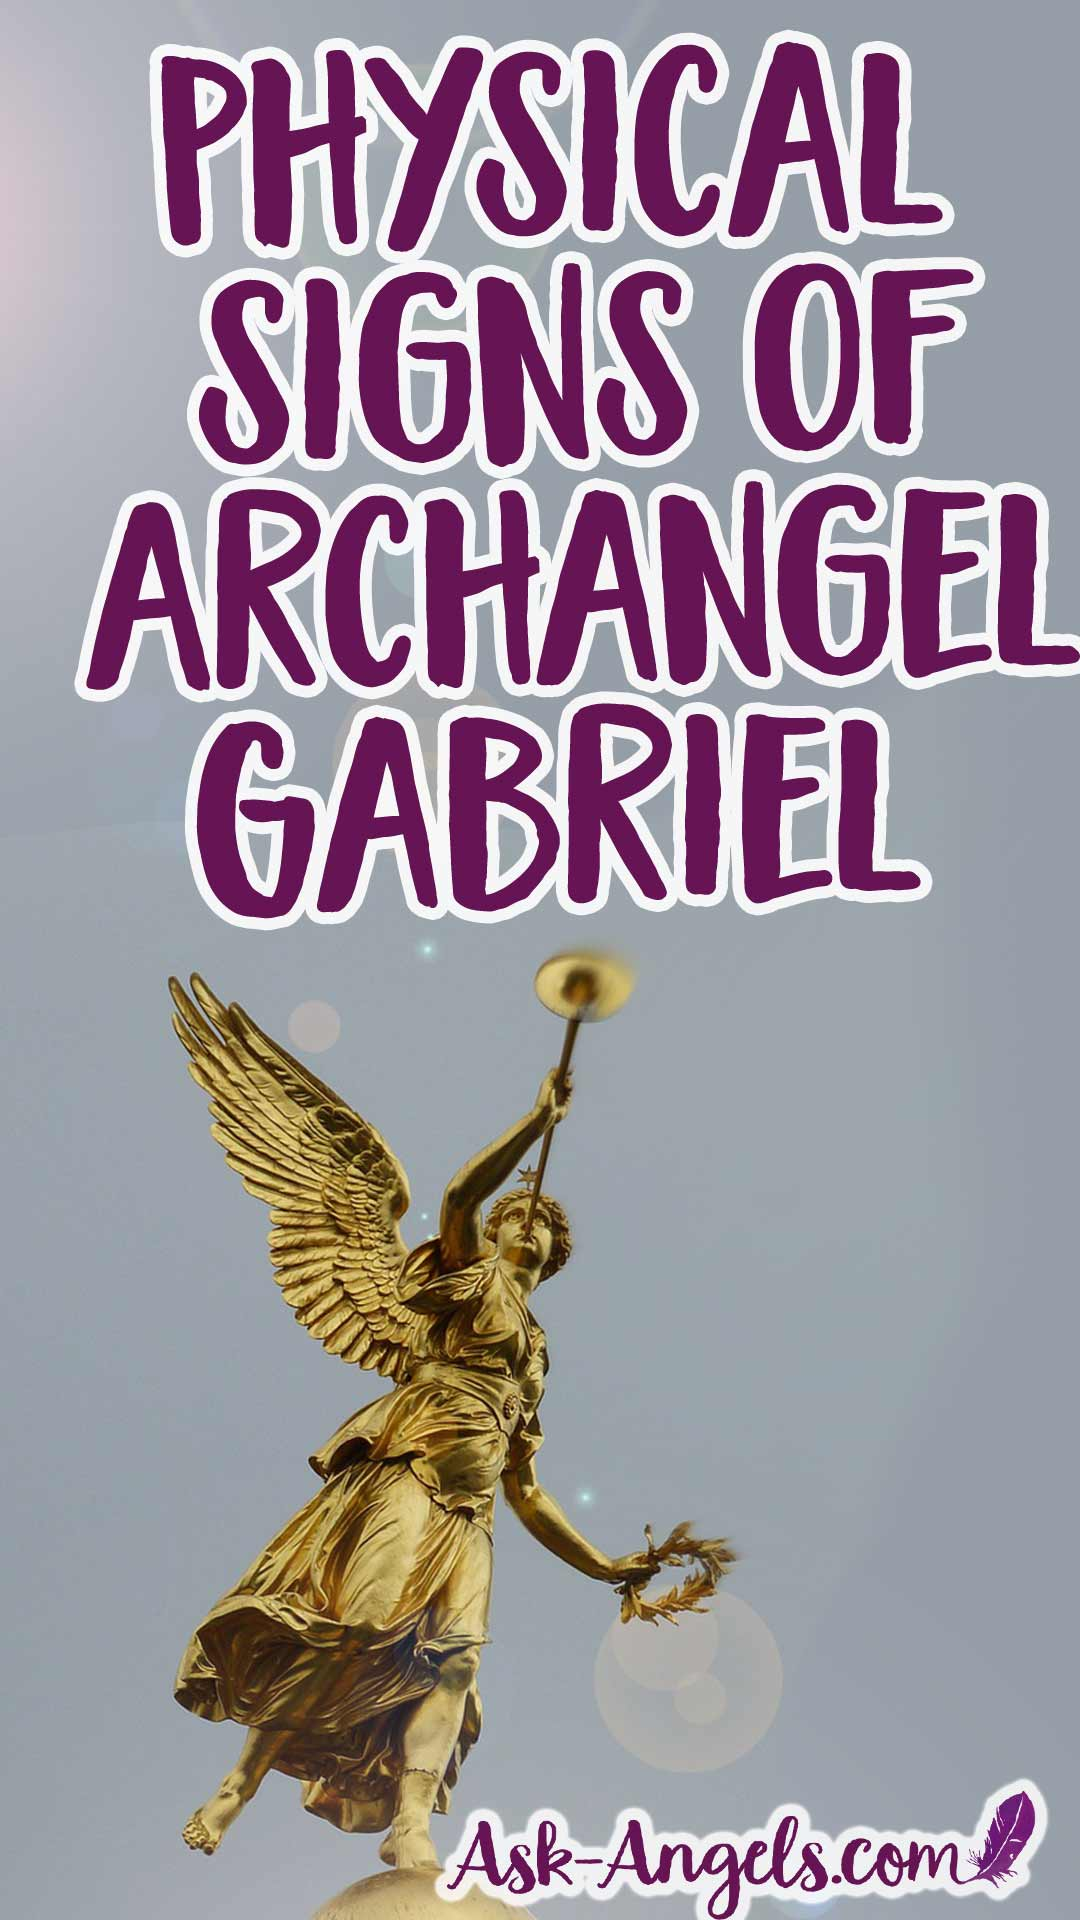 Physical Signs of Archangel Gabriel